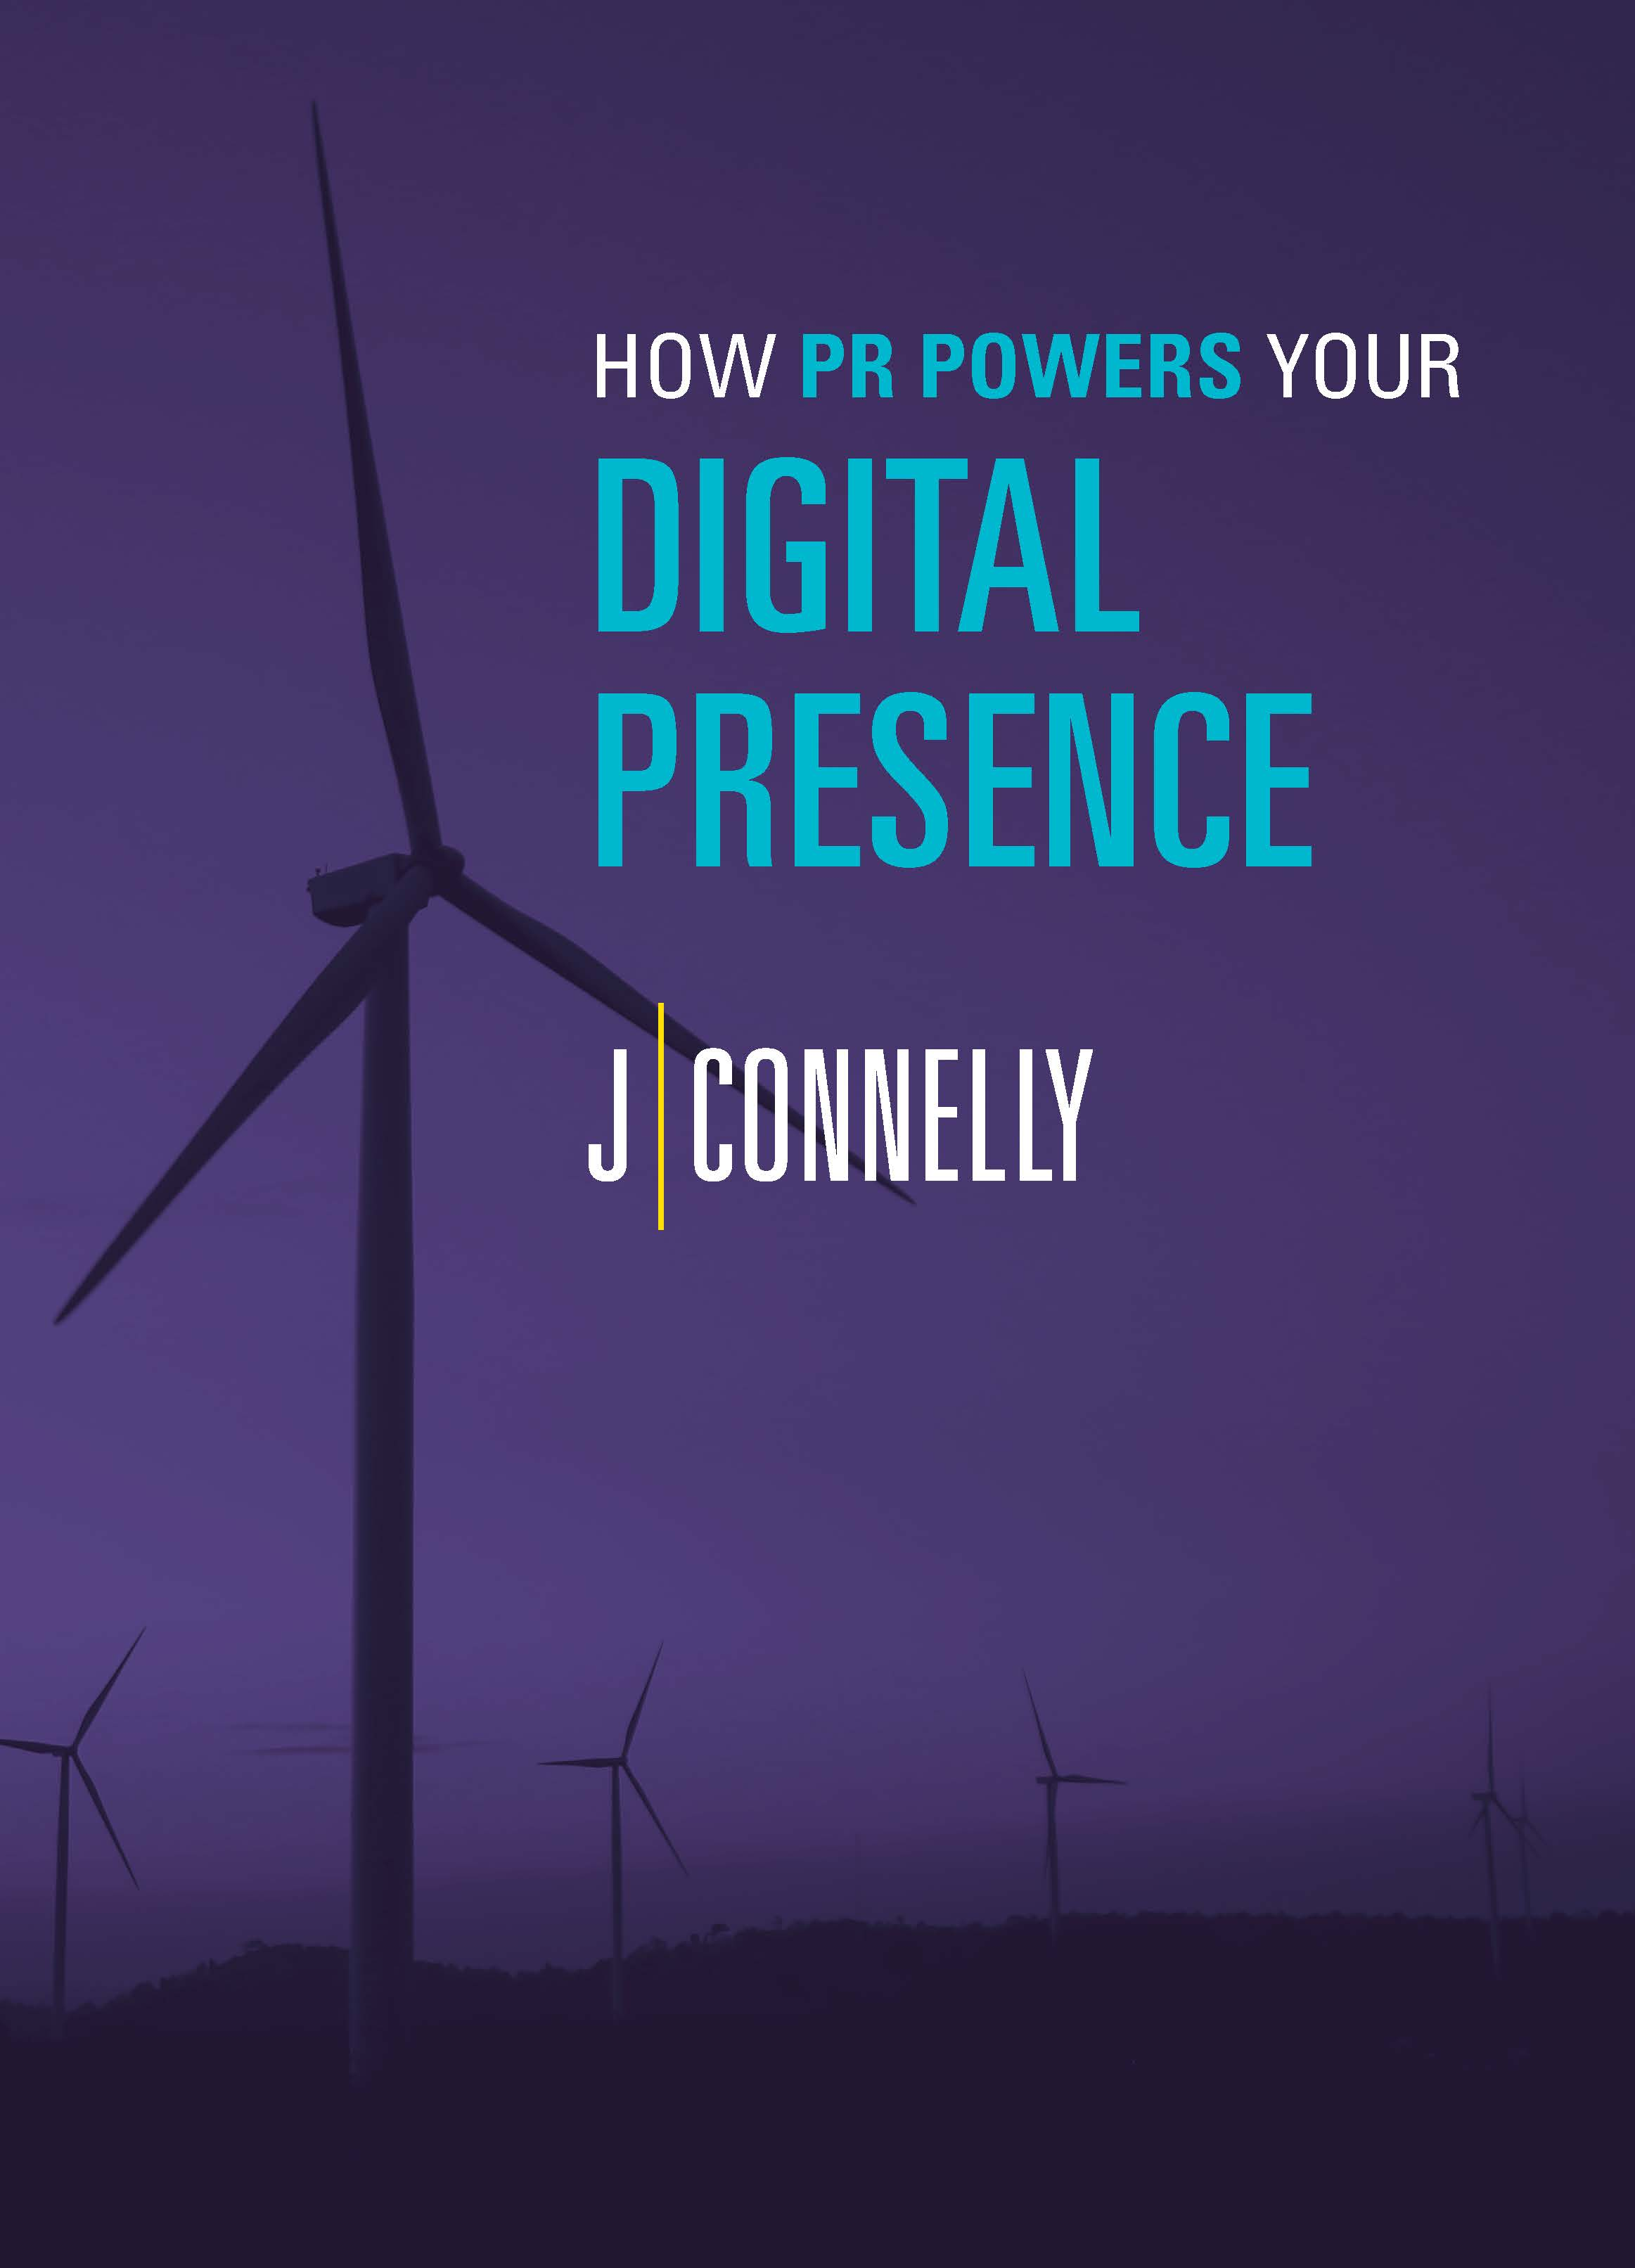 JConnelly_How PR Powers Your Digital Presence_Page_1